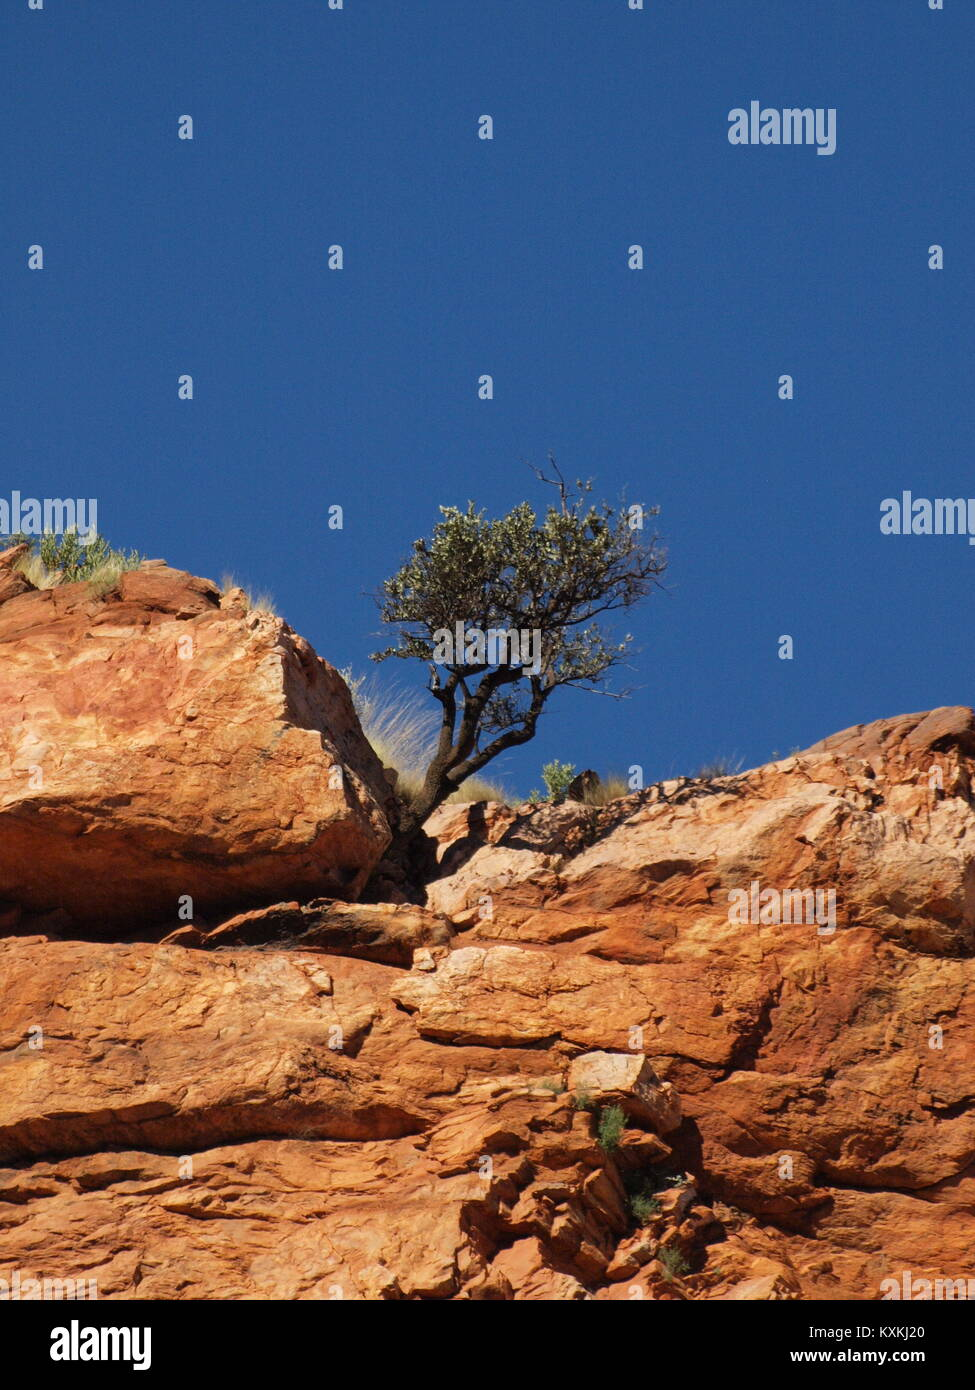 Eucalypt tree on the rim of ormiston gorge, northern territory, Australia - Stock Image